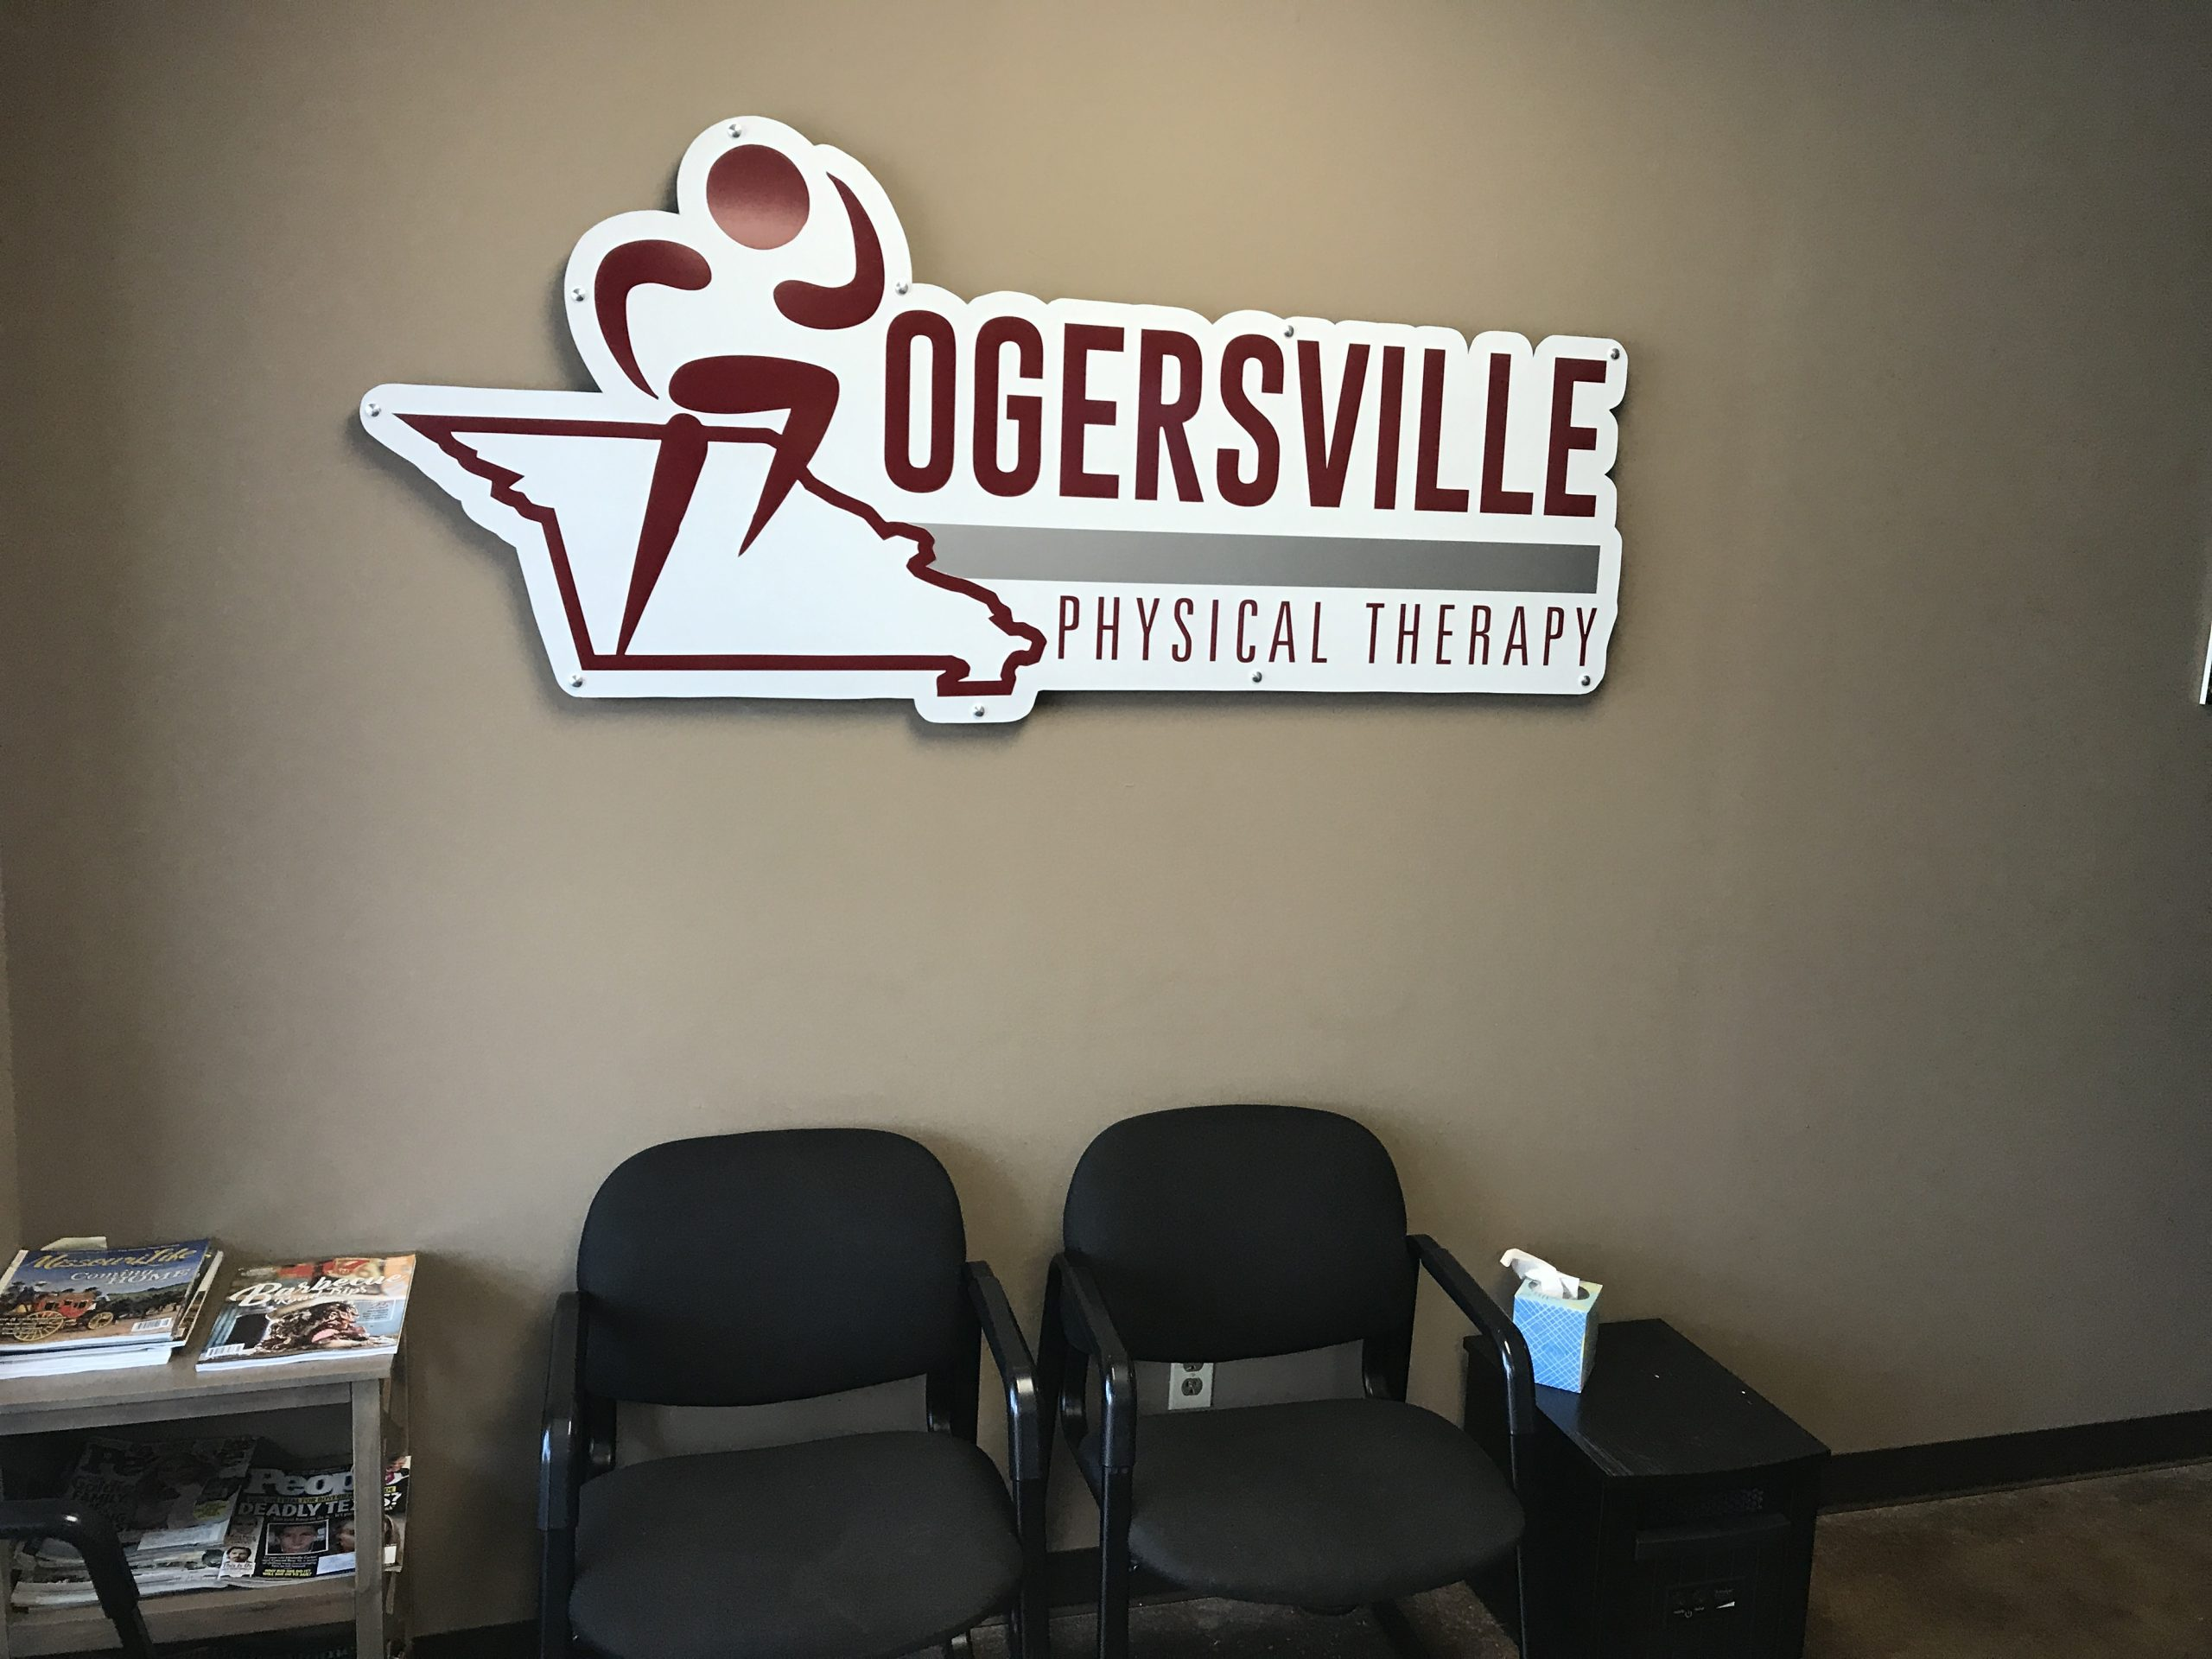 Rogersville Physical Therapy